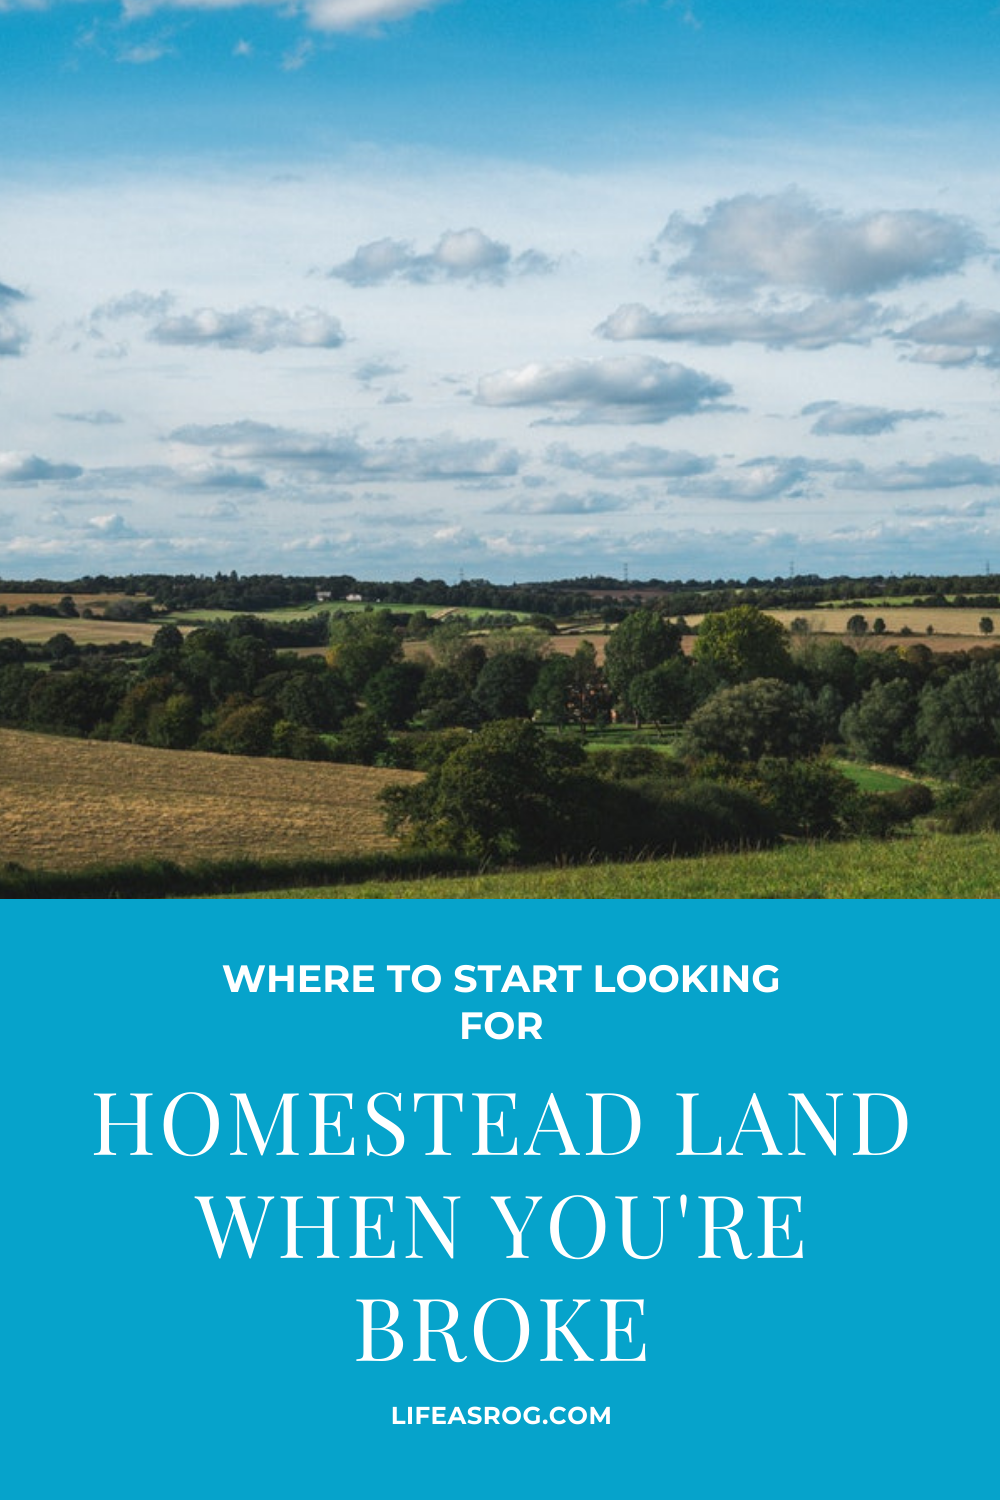 Where To Start Looking For Homestead Land When You\'re Broke